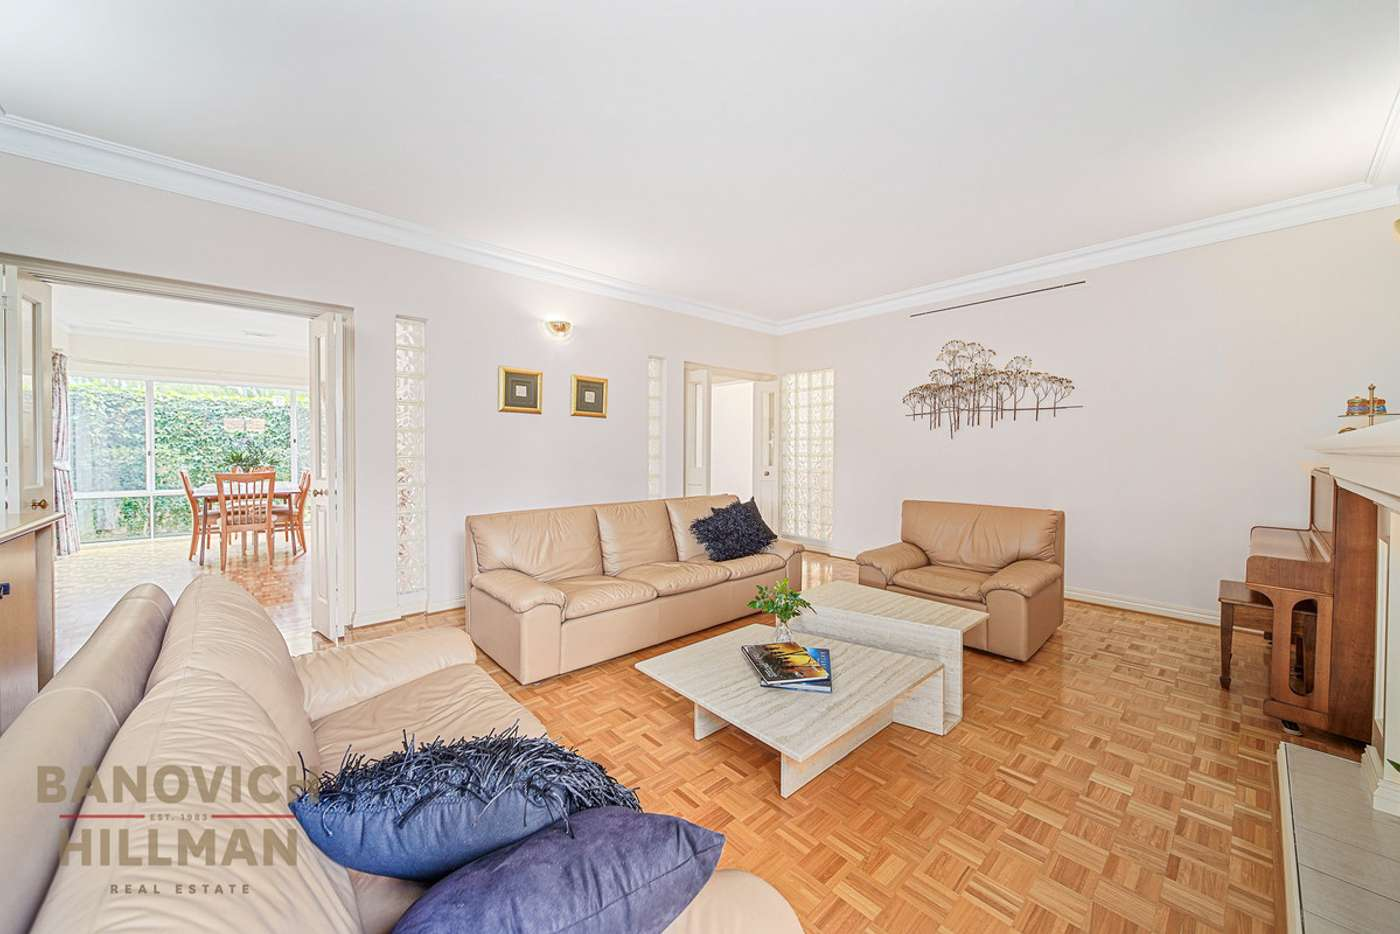 Sixth view of Homely house listing, 29A Duncraig Road, Applecross WA 6153